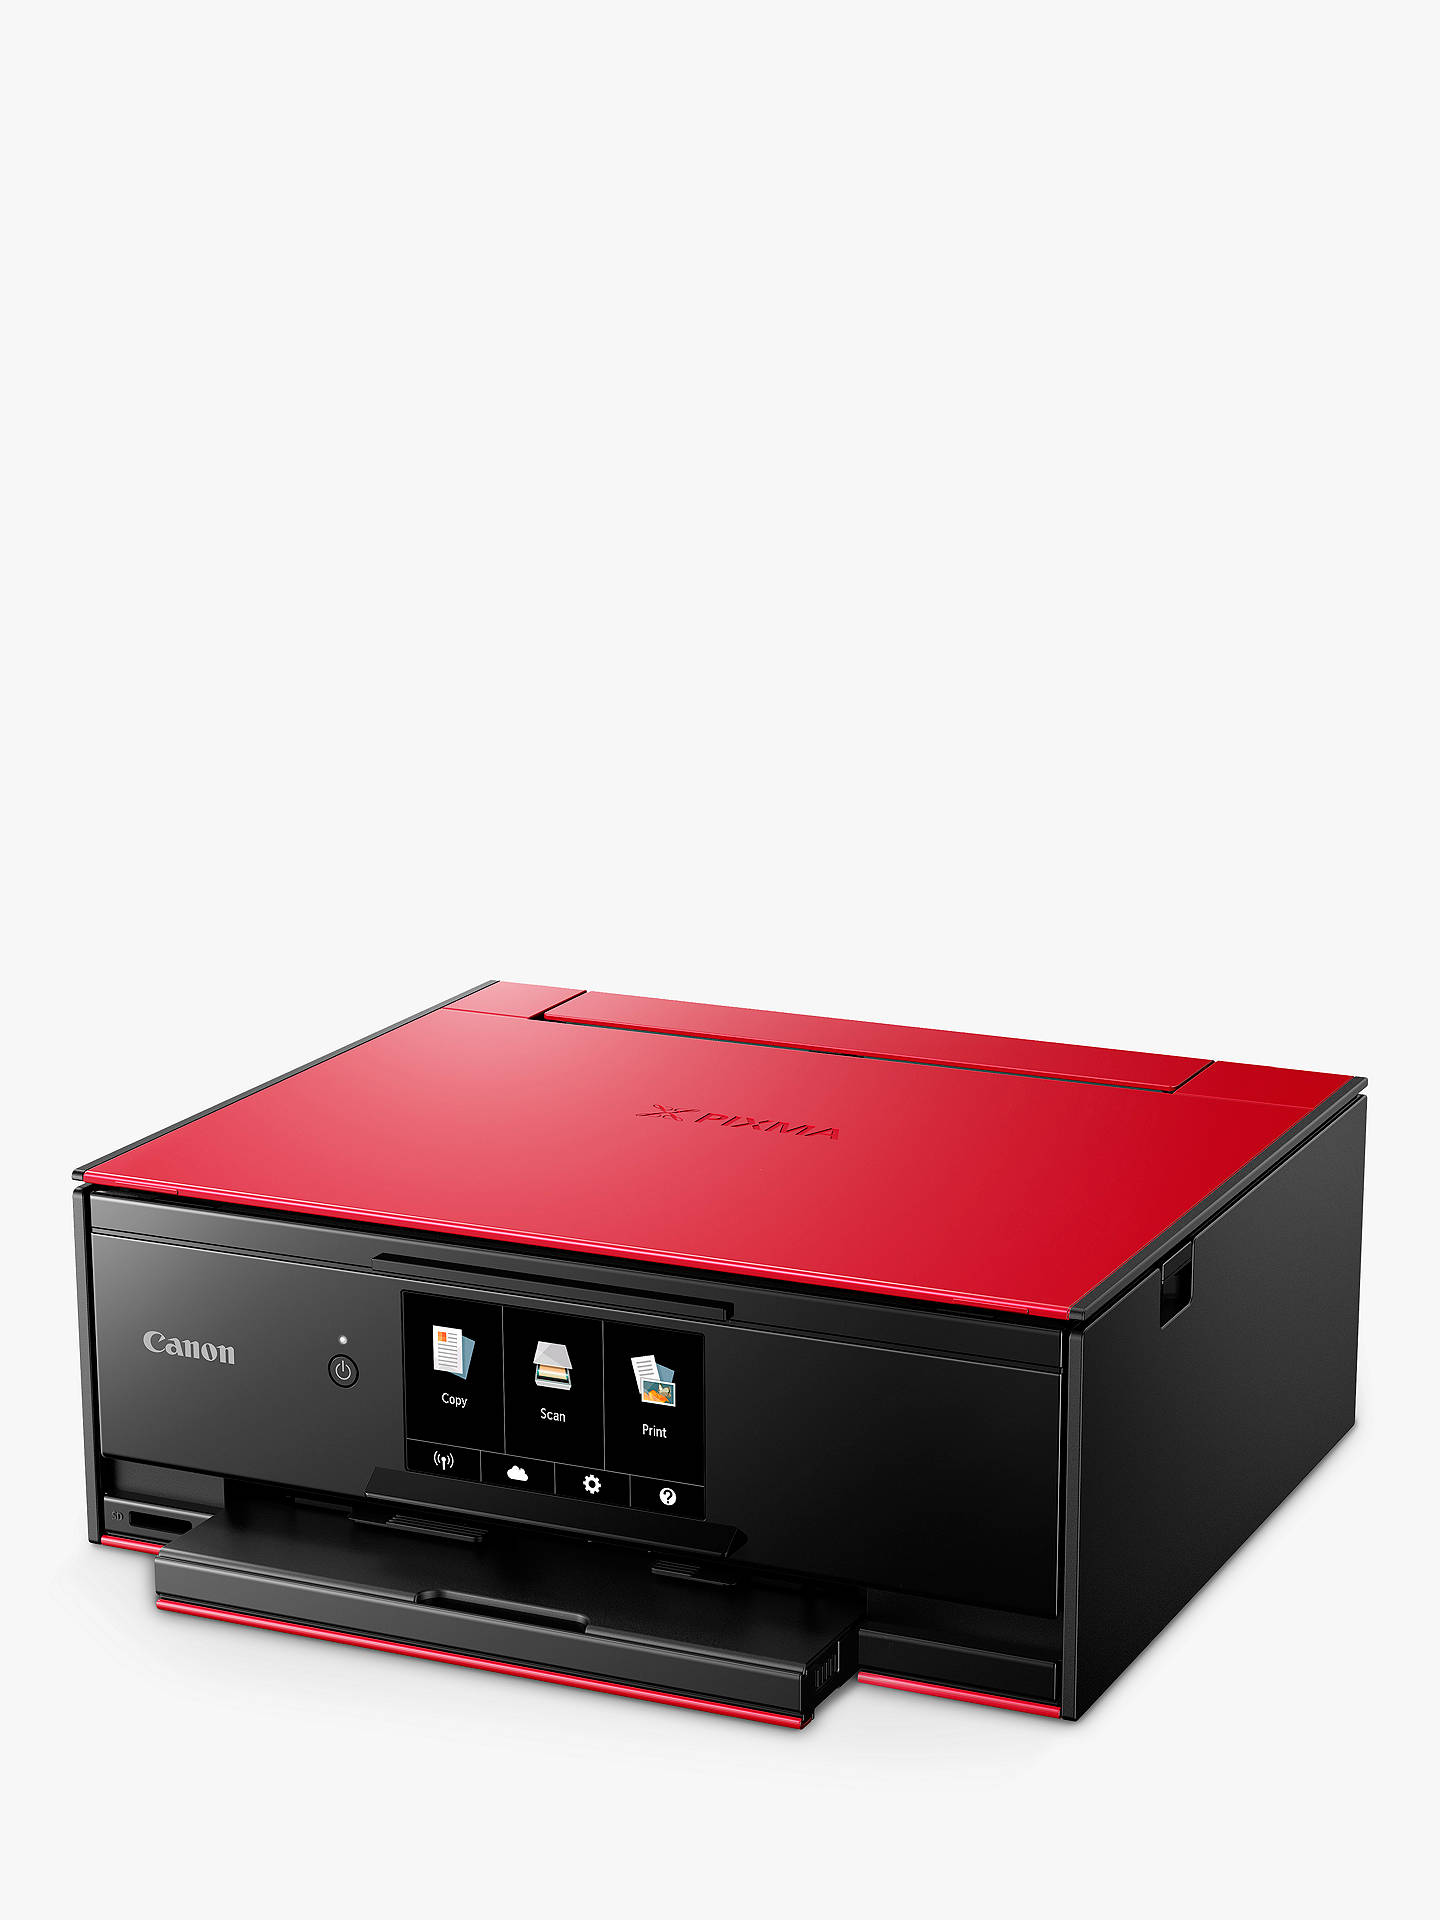 BuyCanon PIXMA TS9155 All-in-One Wireless Wi-Fi Printer with Auto-Tilting Touch Screen, Red Online at johnlewis.com